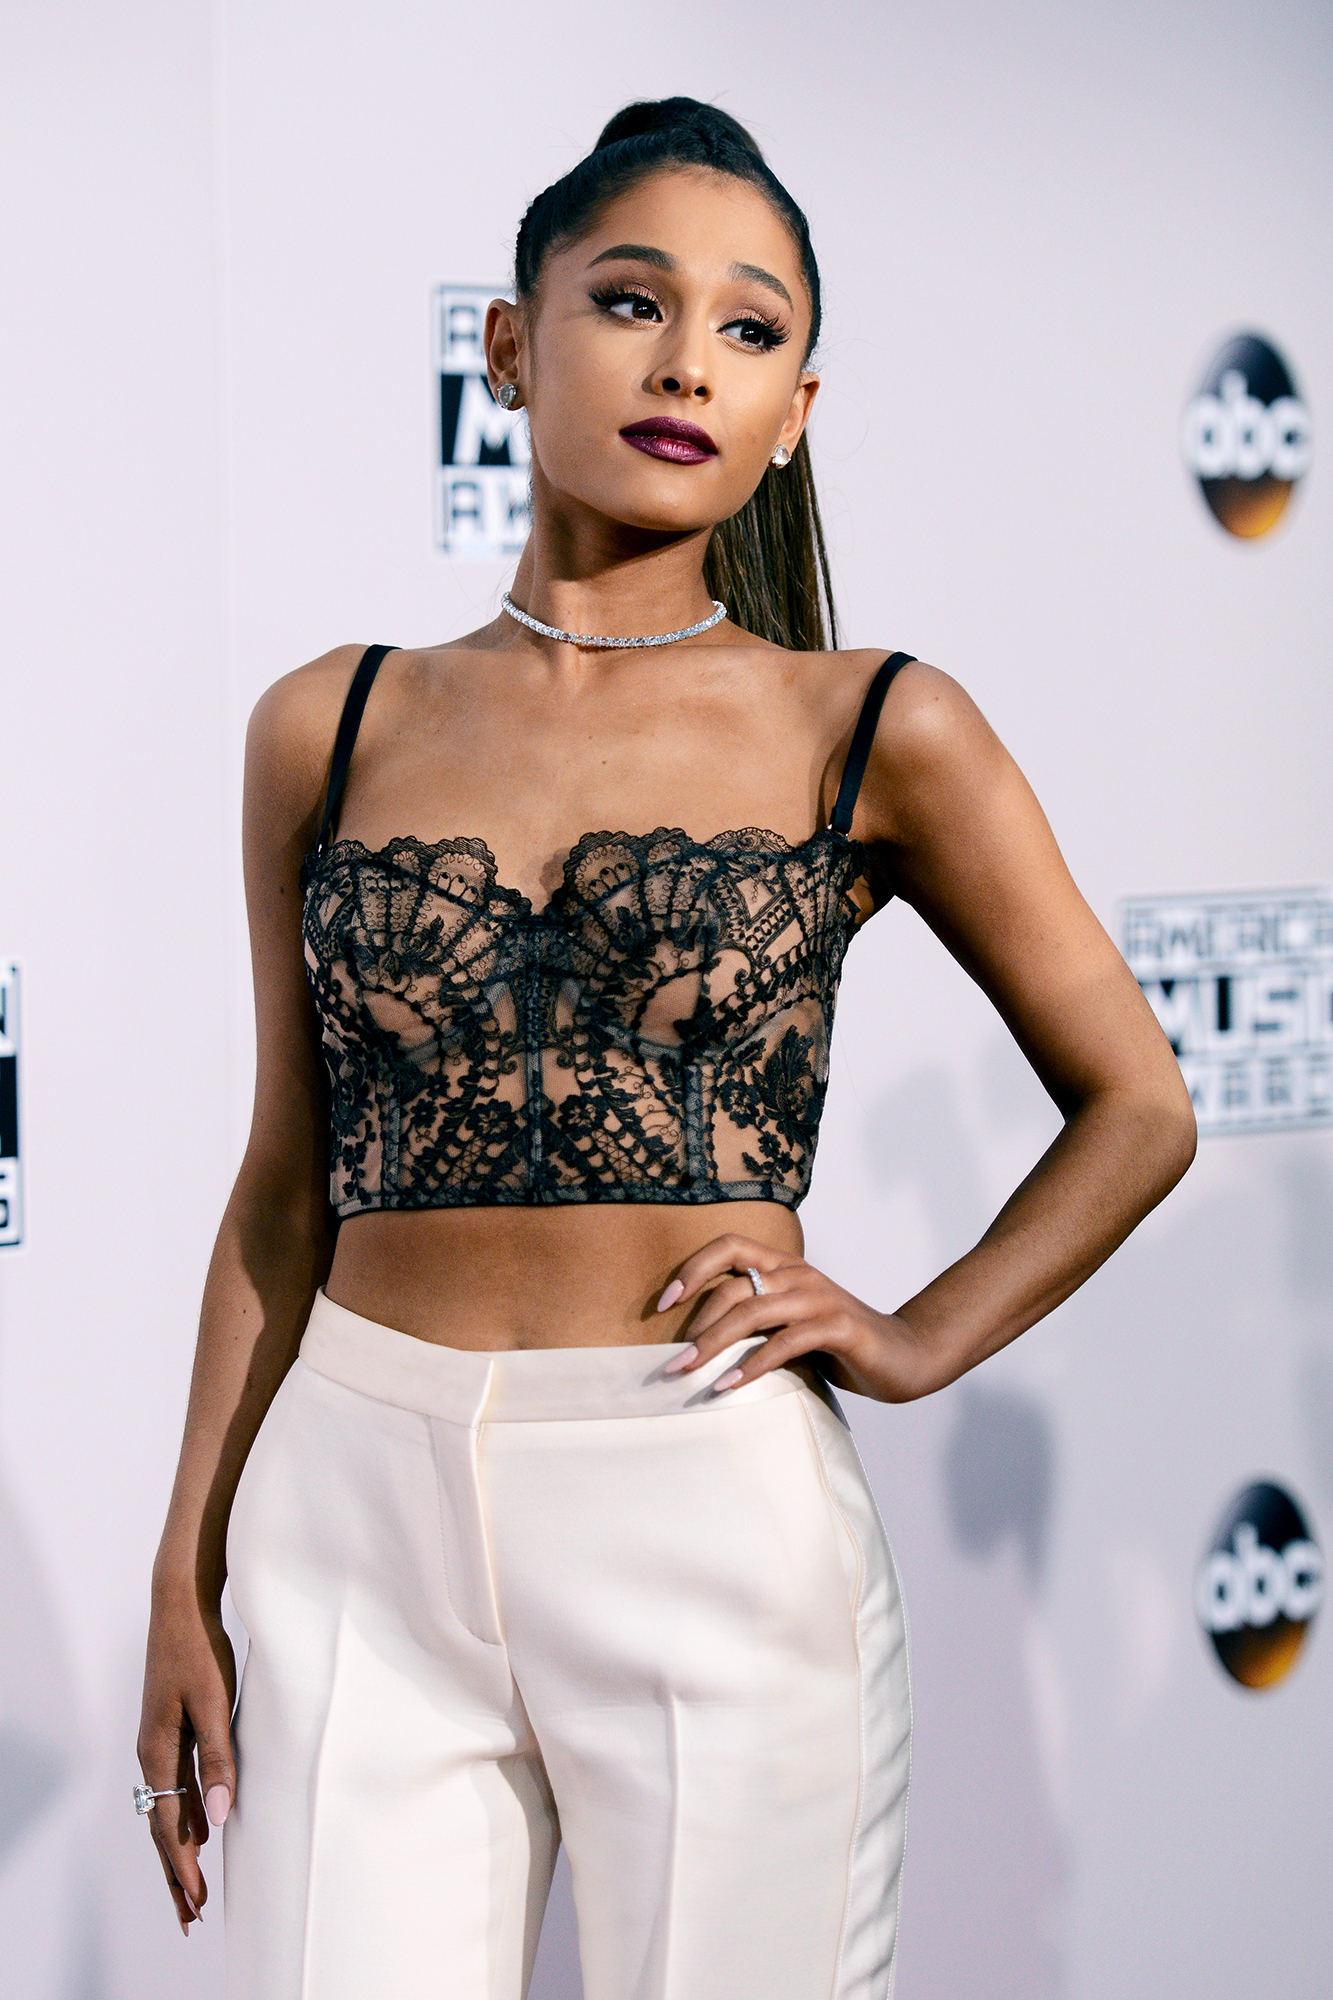 ariana grande dropped out of snl premiere for emotional reasons